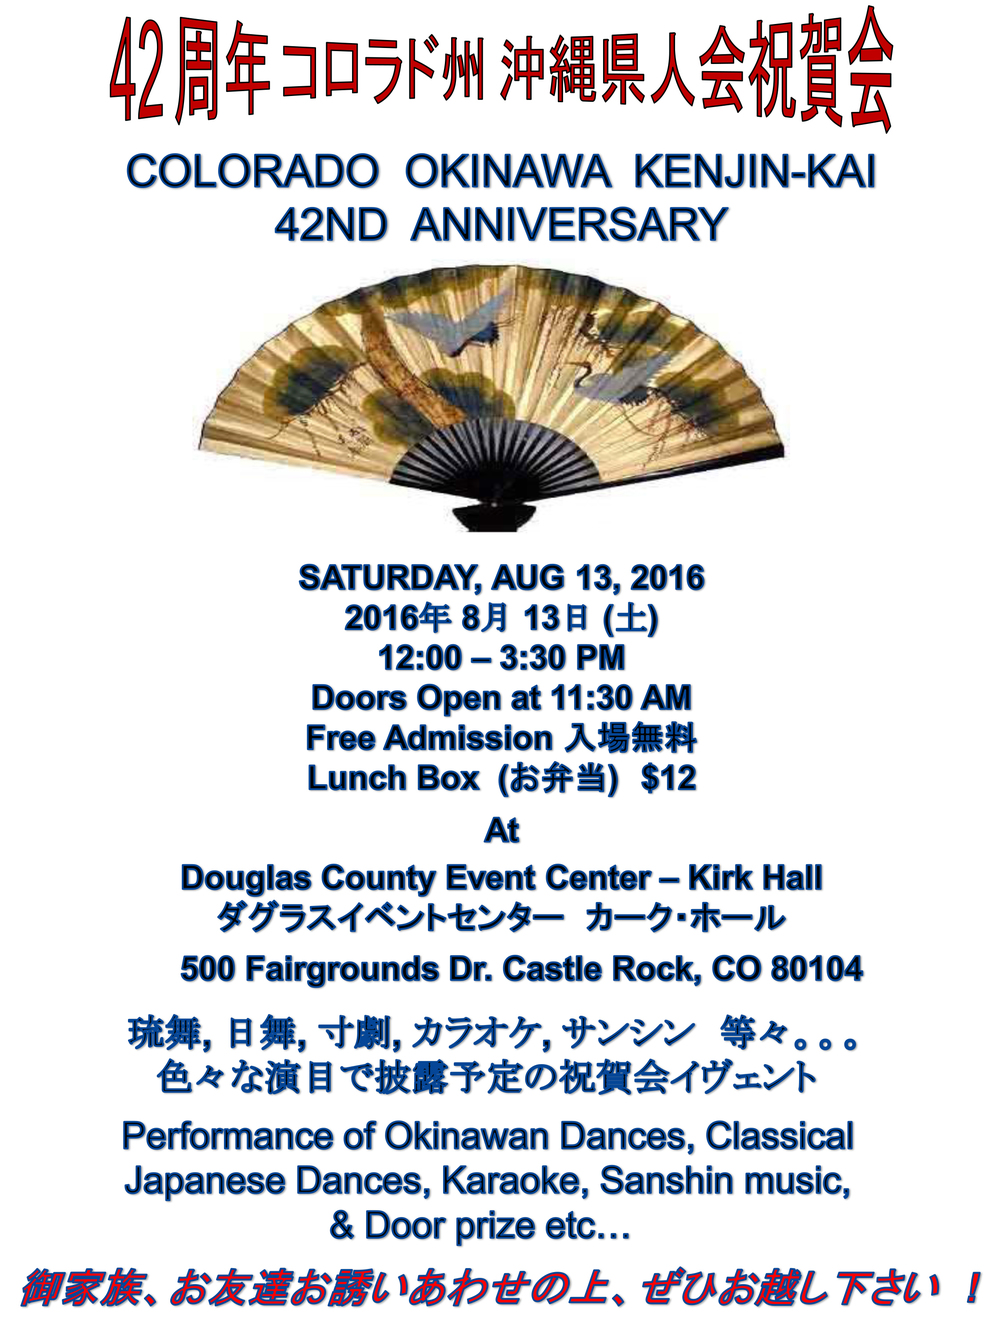 OKK 42ND ANNIVERSARY FLYER (1).jpg